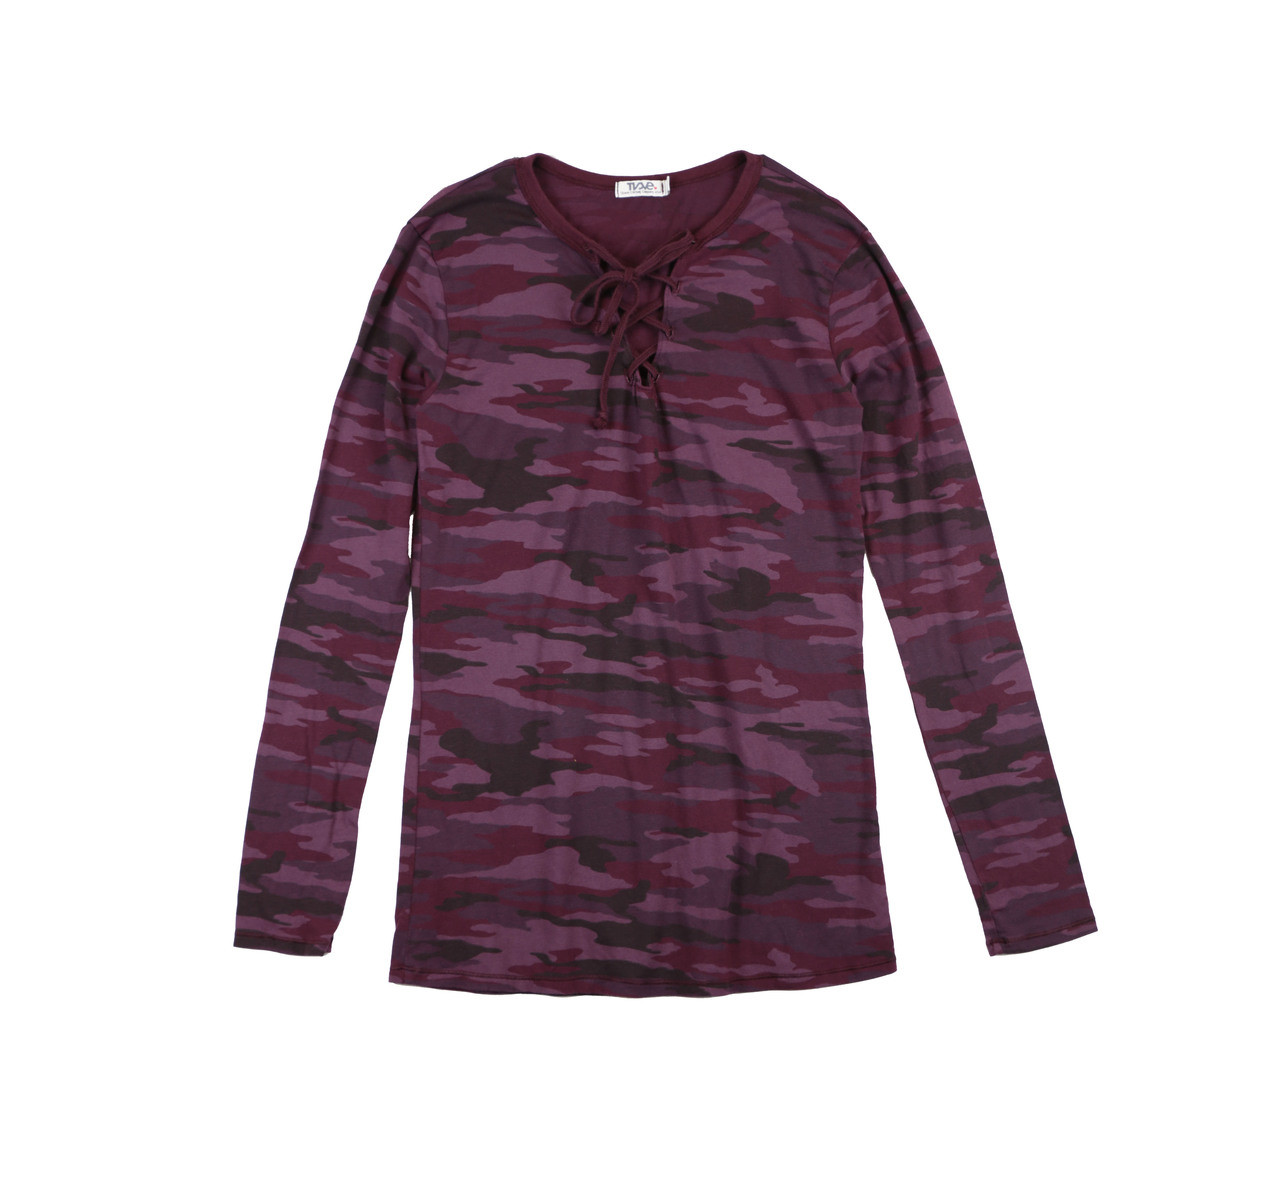 Women Camo Print Jersey Lace Up Front Tee T2love Inc